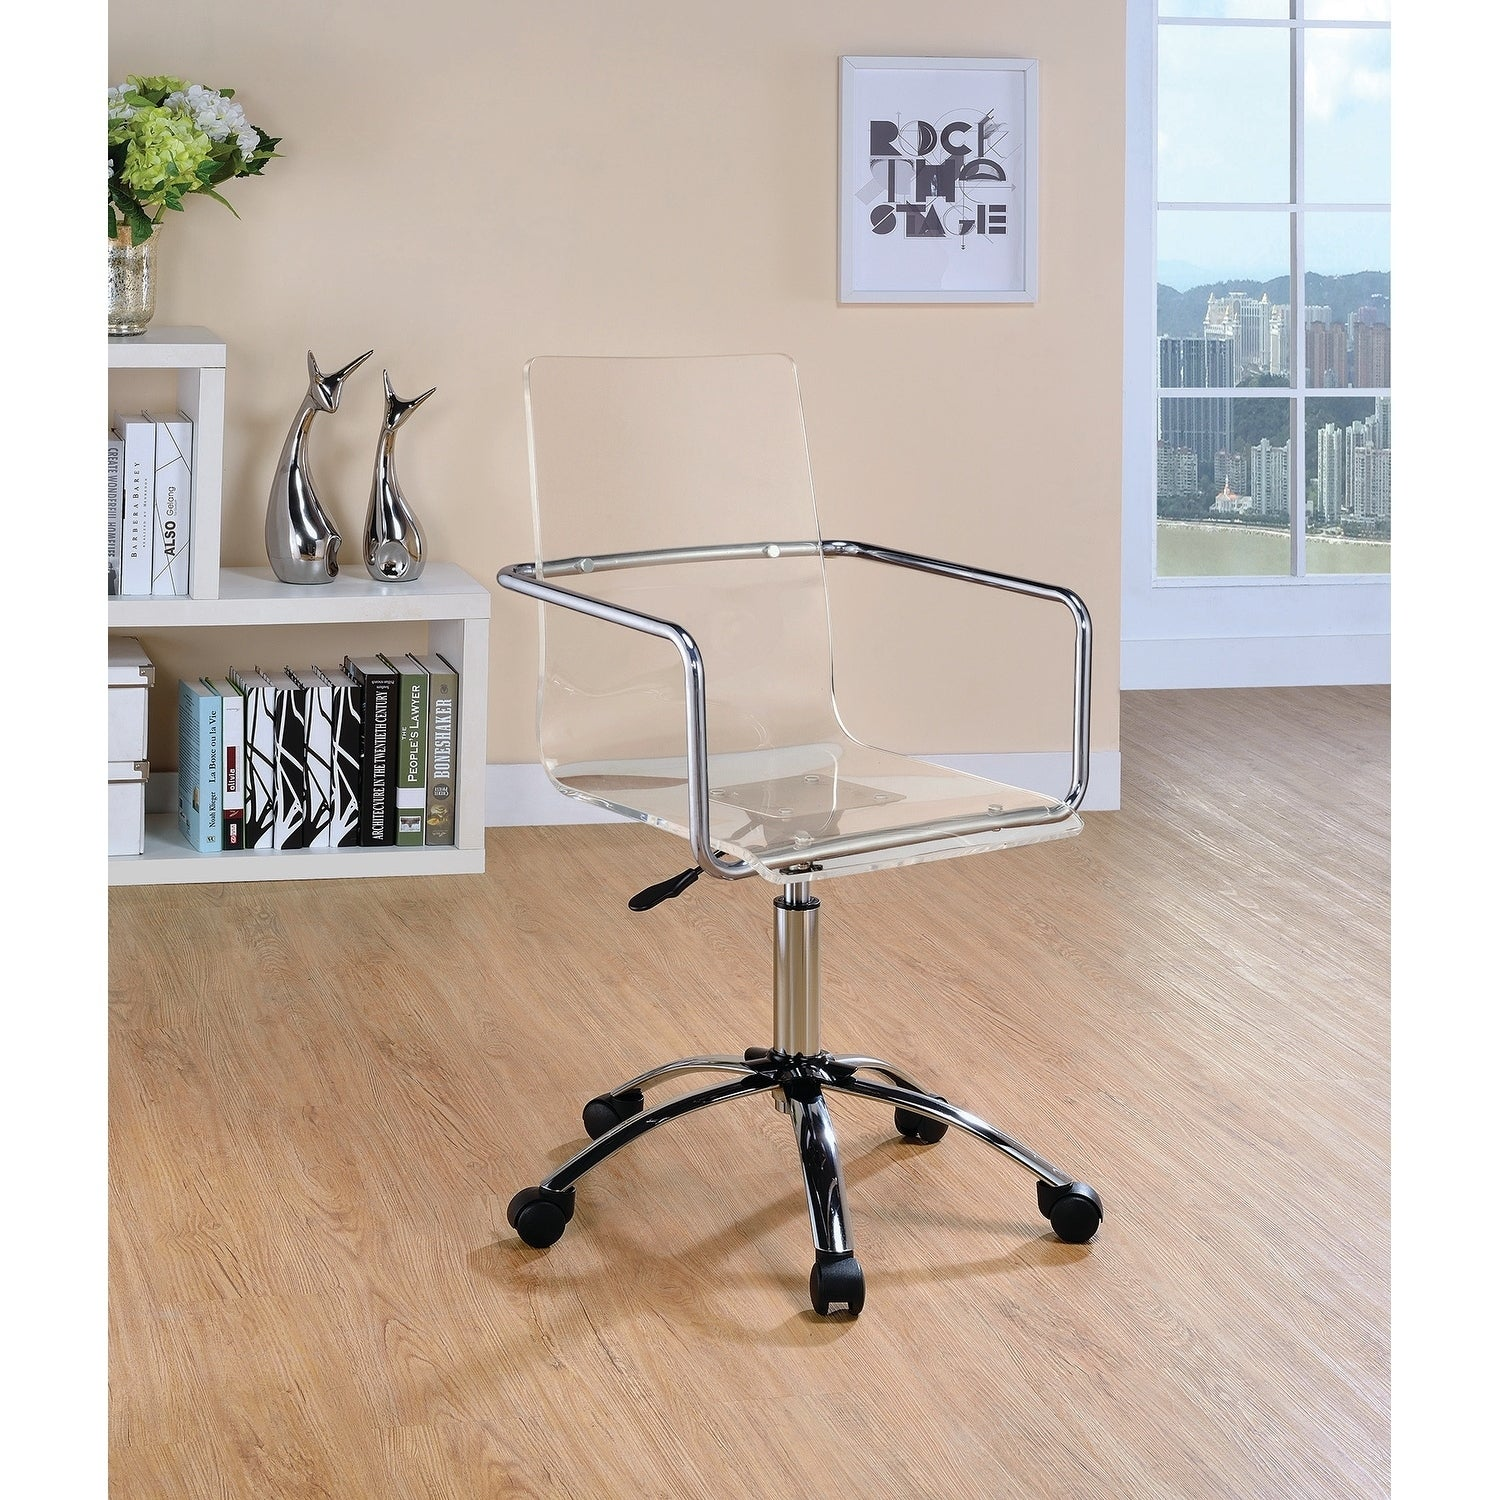 Image of: Shop Black Friday Deals On Contemporary Clear Acrylic Office Chair Overstock 20875408